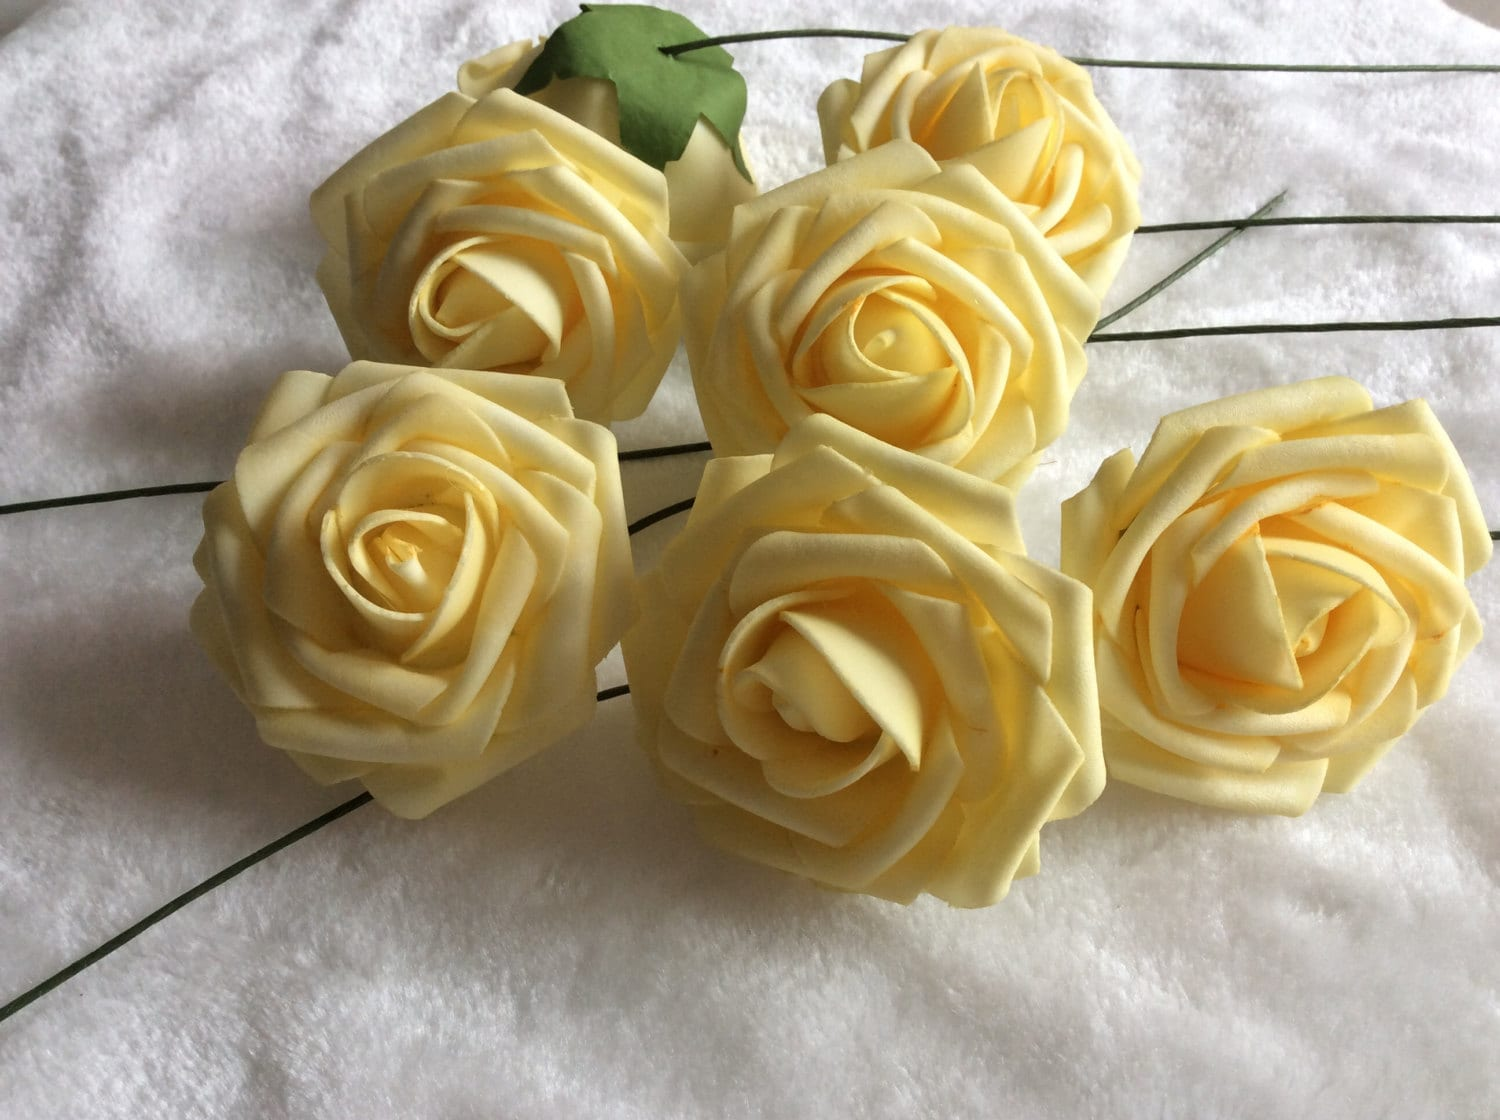 100 Pcs Light Yellow Canary Flowers For Wedding Fake Foam Roses Pale